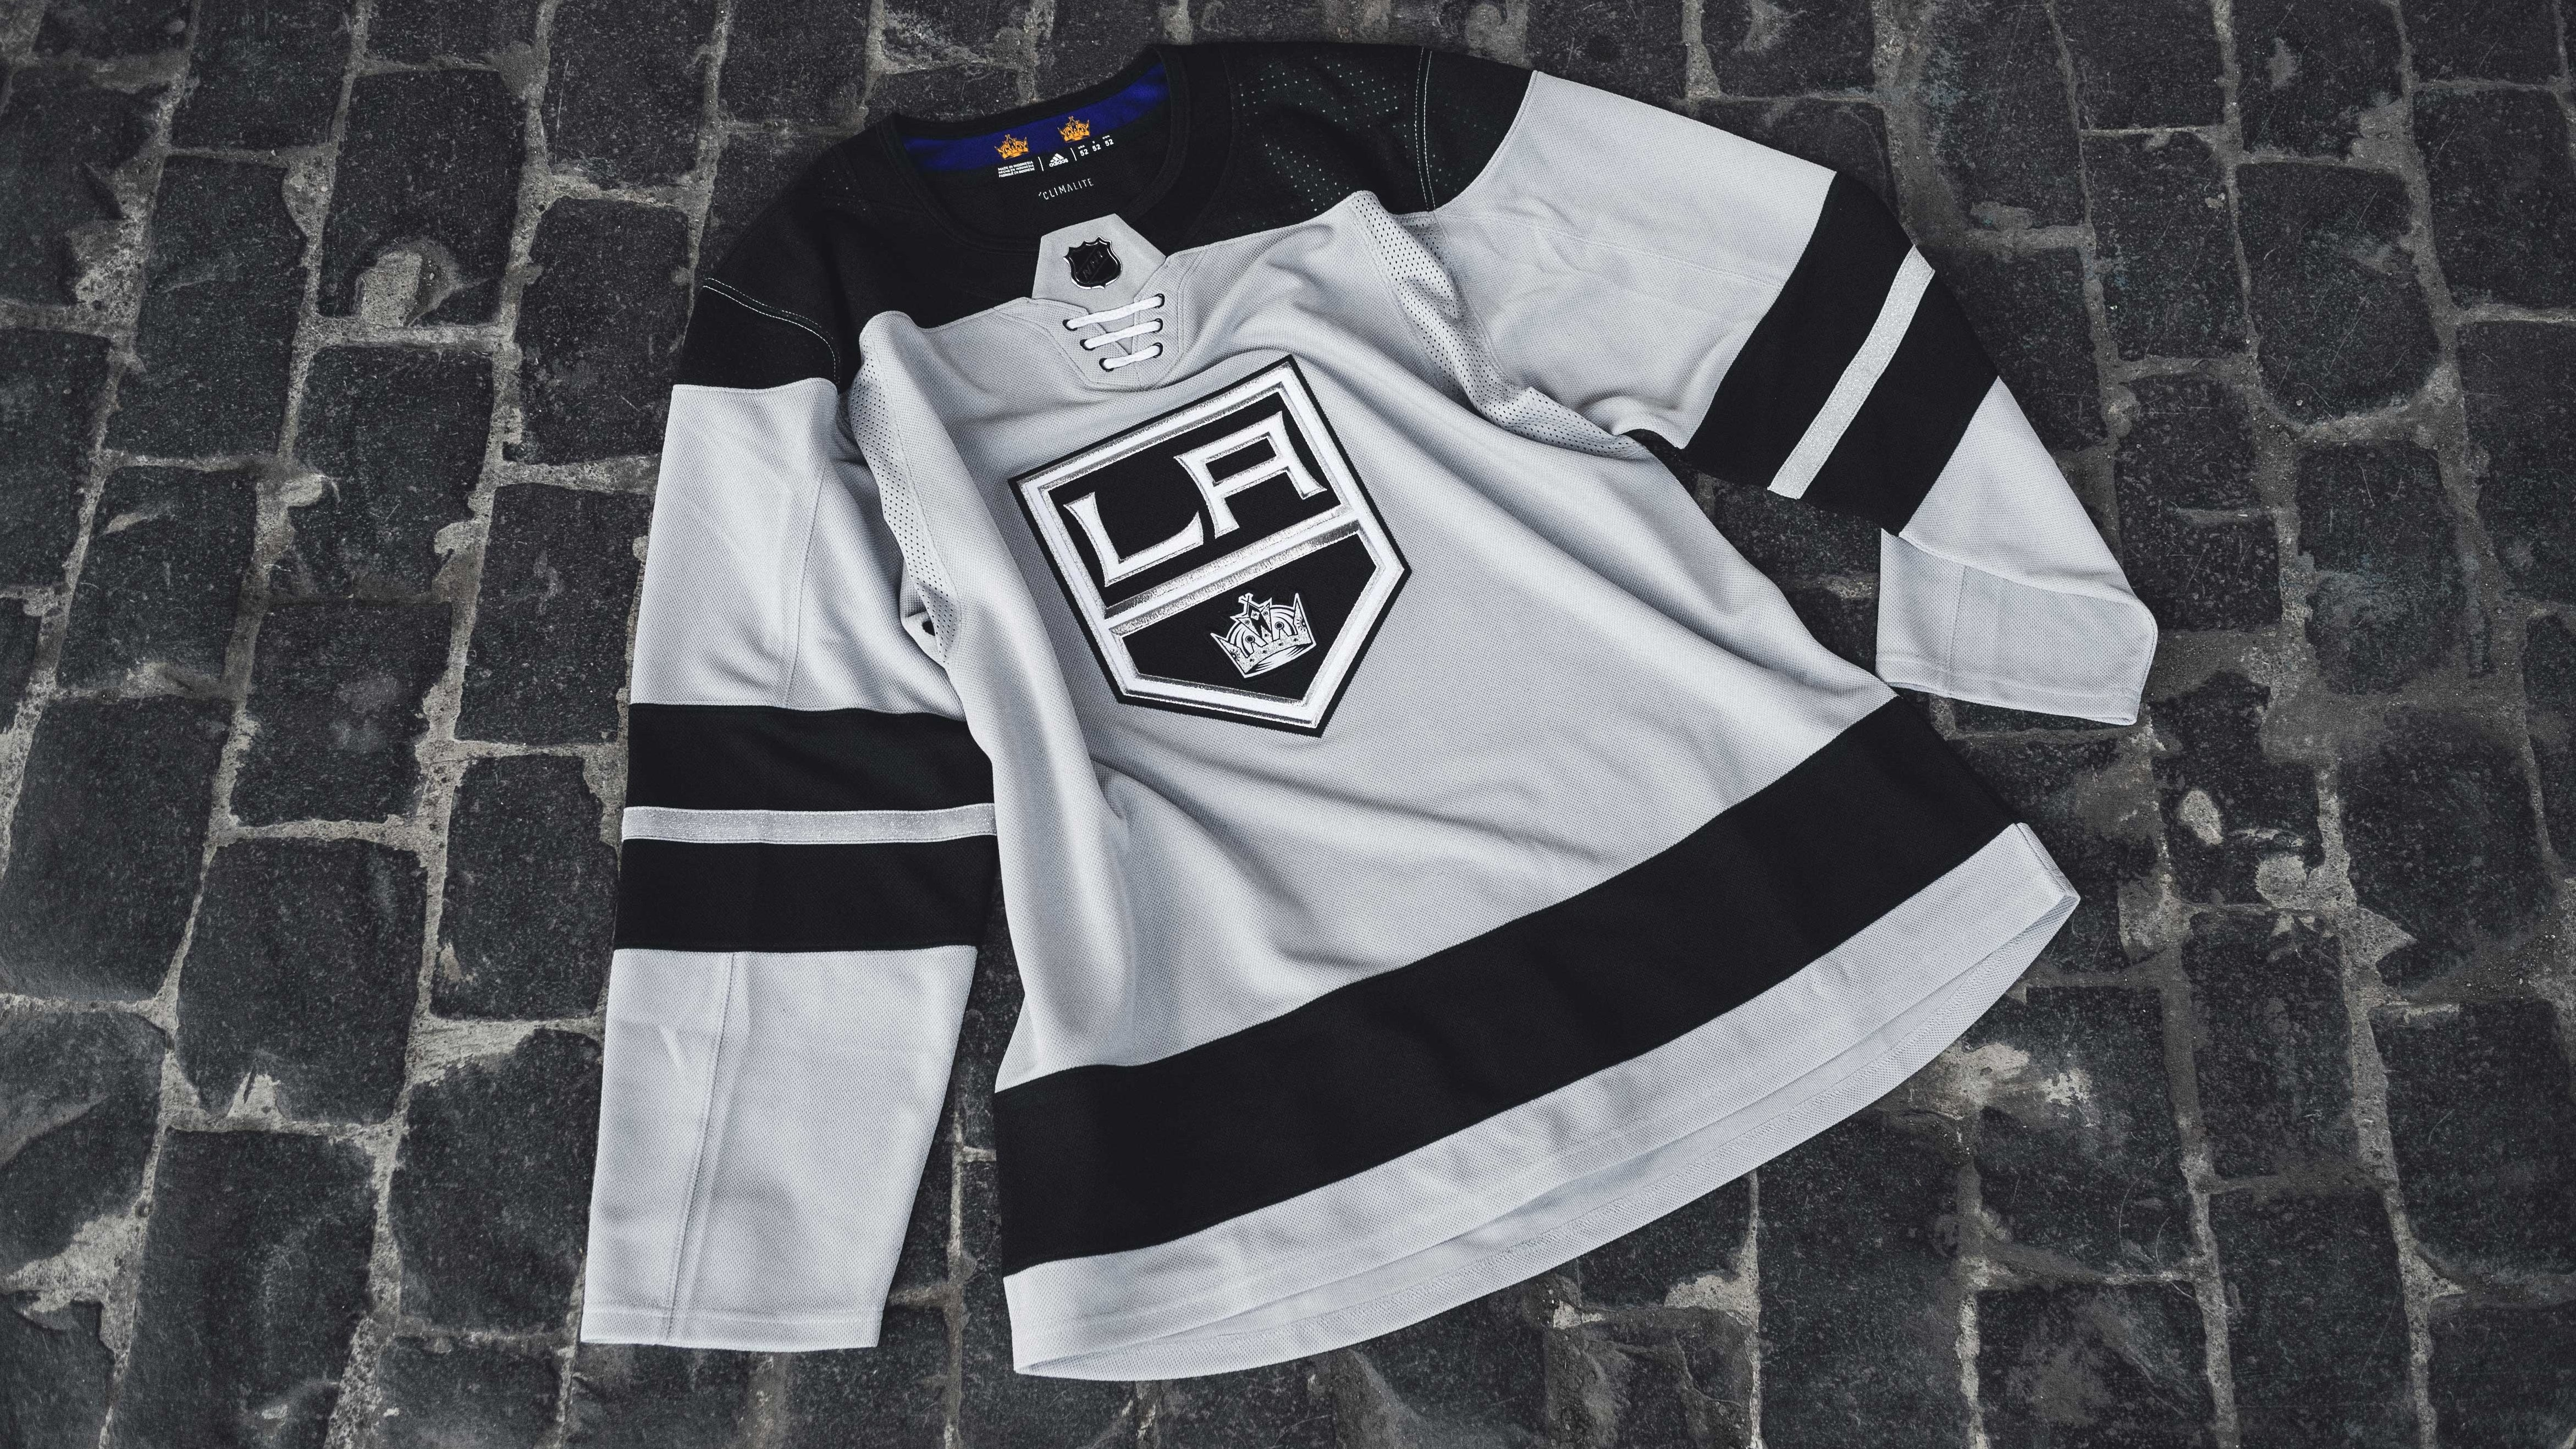 buy popular 1f2ce 8002d Check out the new threads! LA Kings unveil 'Silver Jersey ...